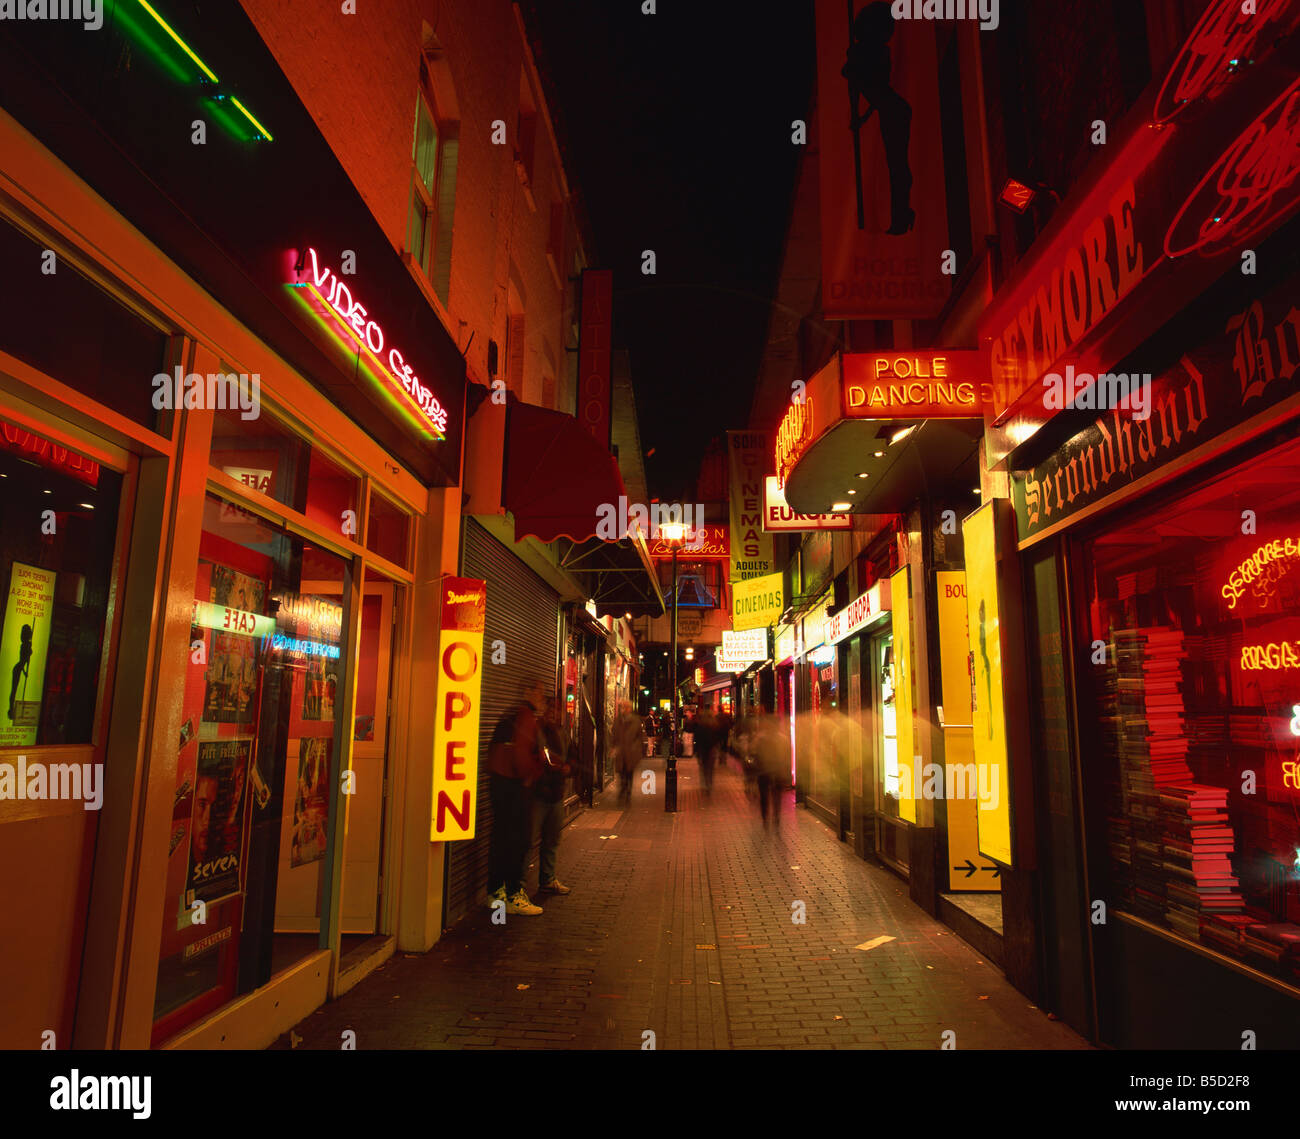 Sex shops in uk